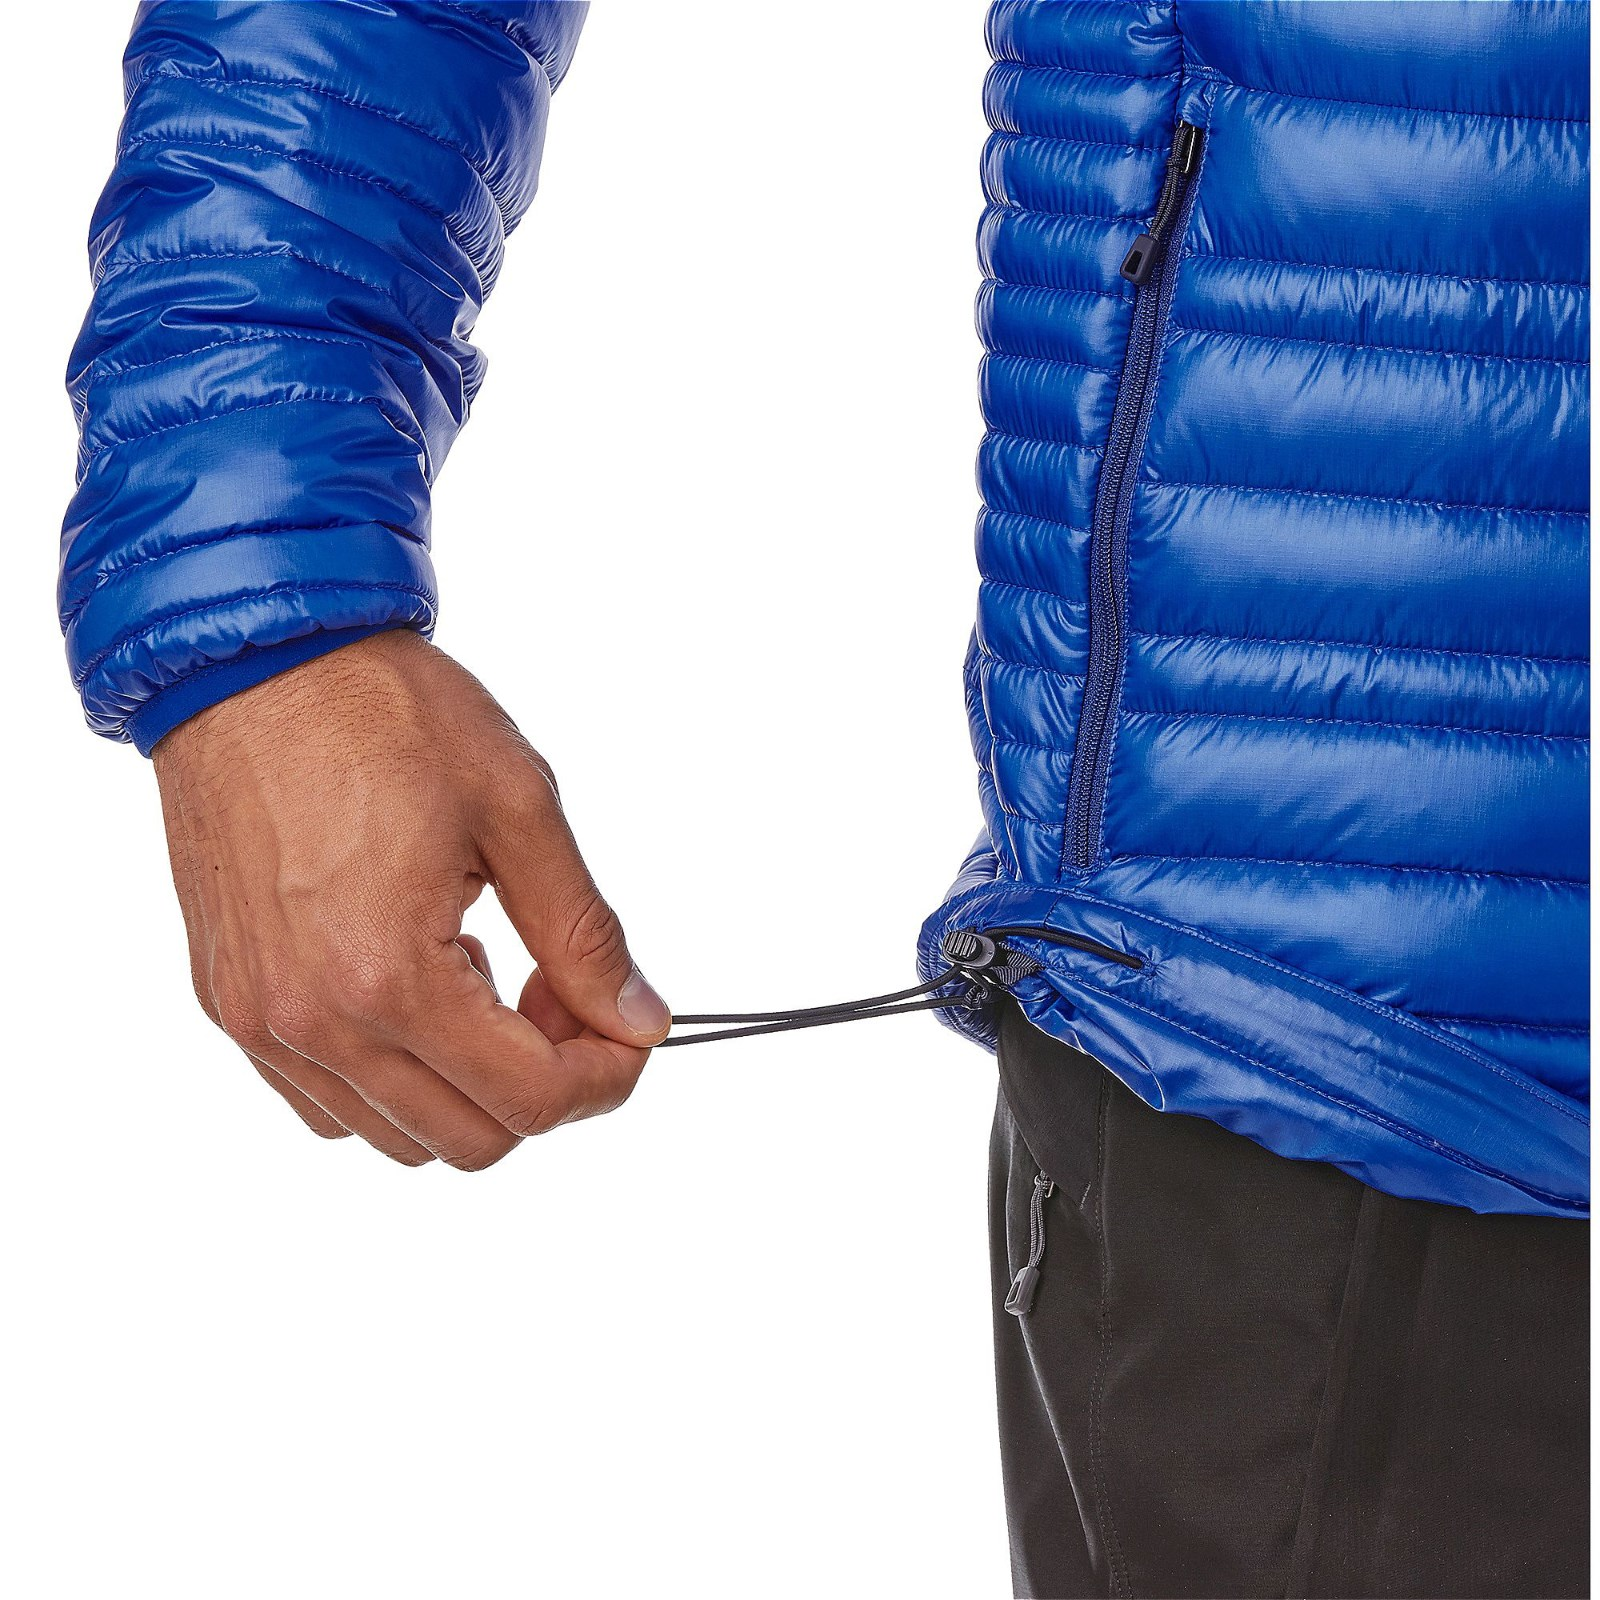 Men's Ultralight Down Jacket Stand Collor Manufacturers, Men's Ultralight Down Jacket Stand Collor Factory, Supply Men's Ultralight Down Jacket Stand Collor